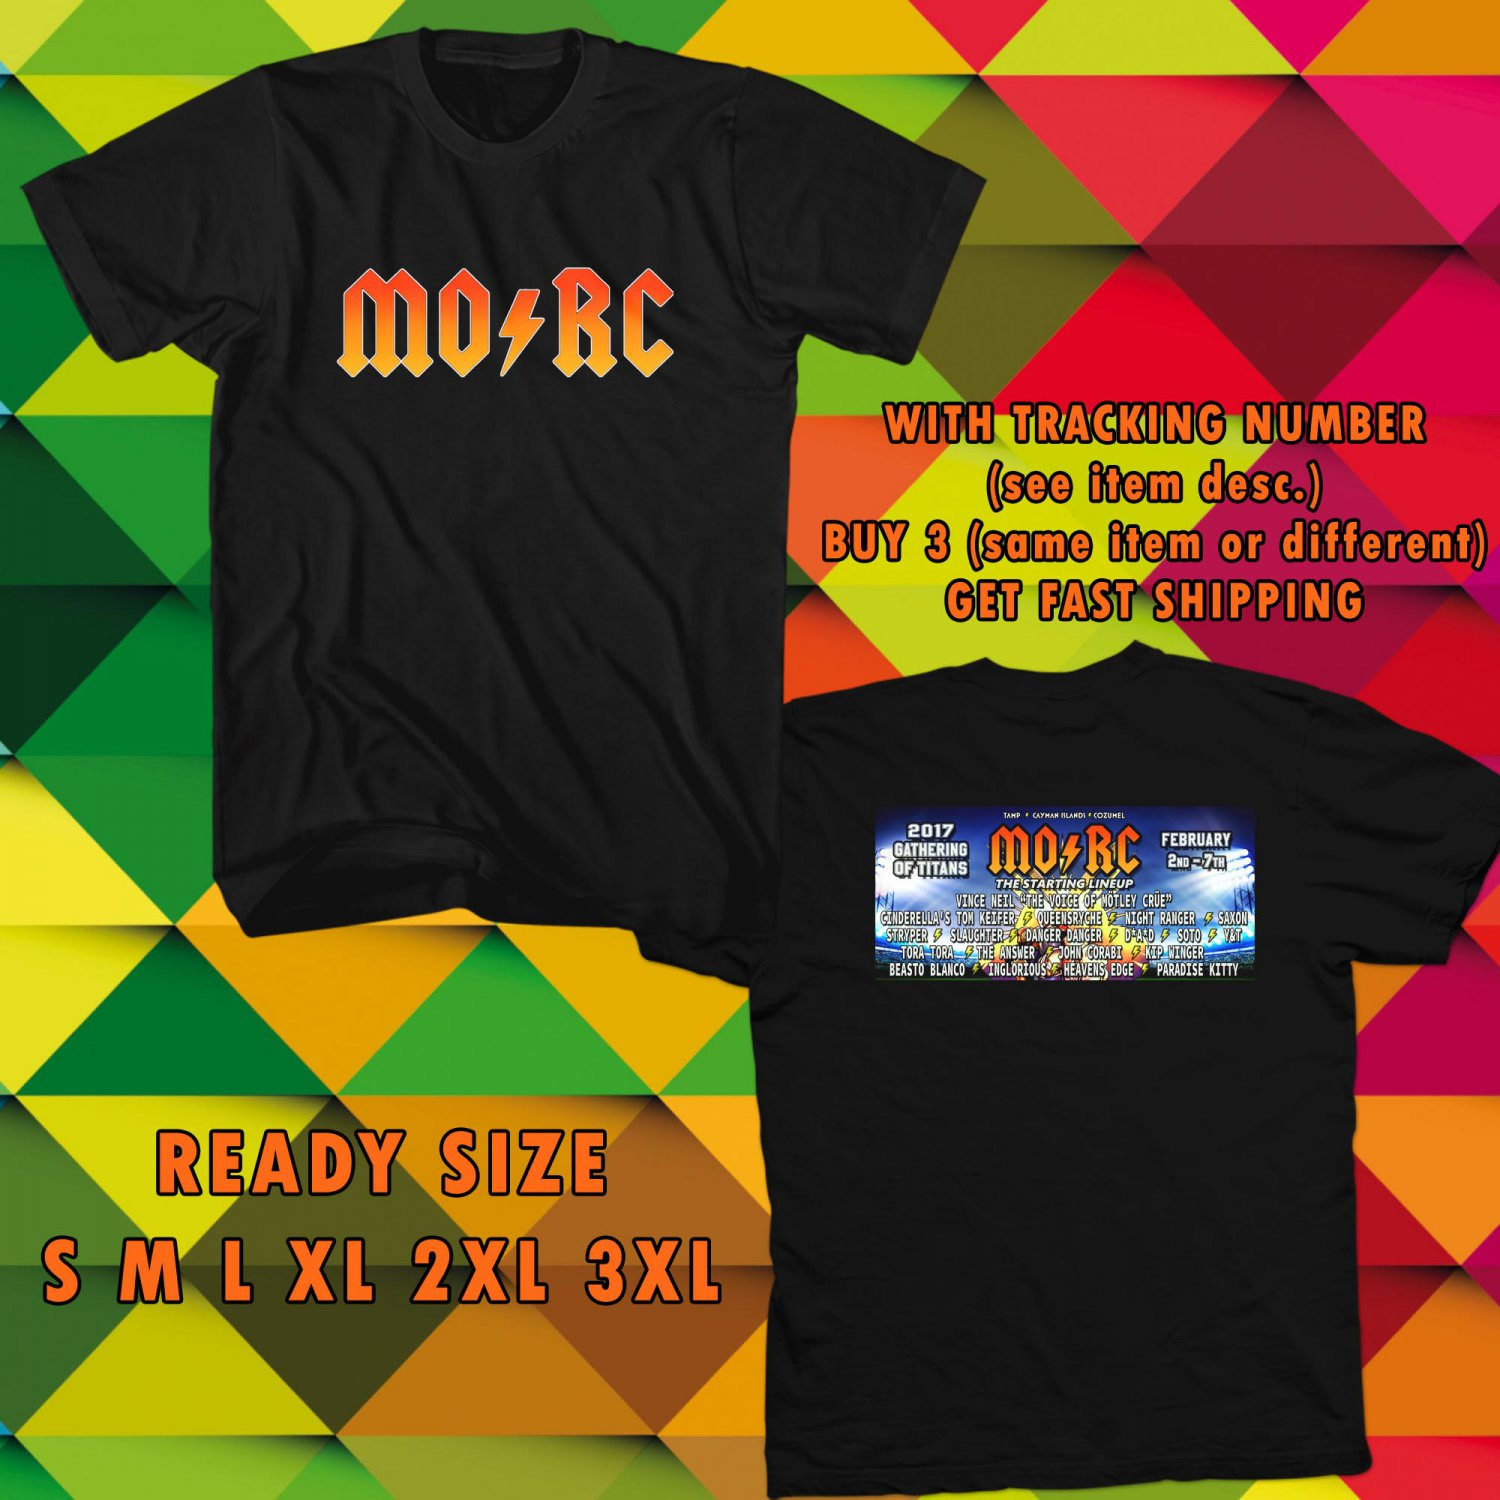 NEW MONSTER OF ROCK CRUISE TOUR 2017 BLACK TEE W DATES DMTR 111